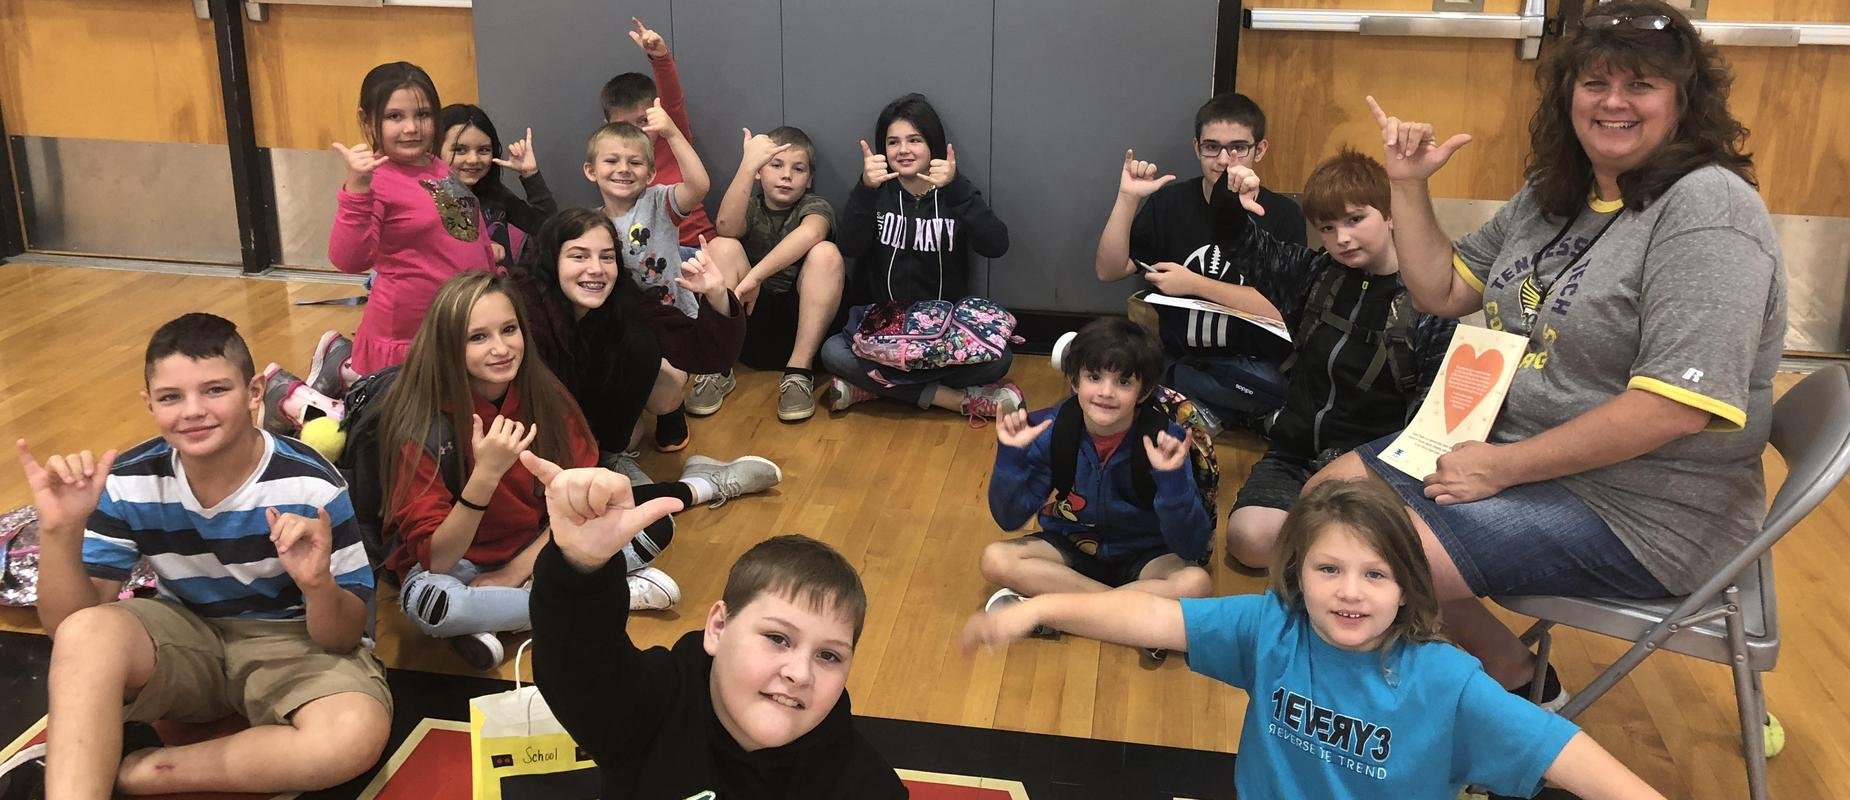 Principal sitting with a group of students